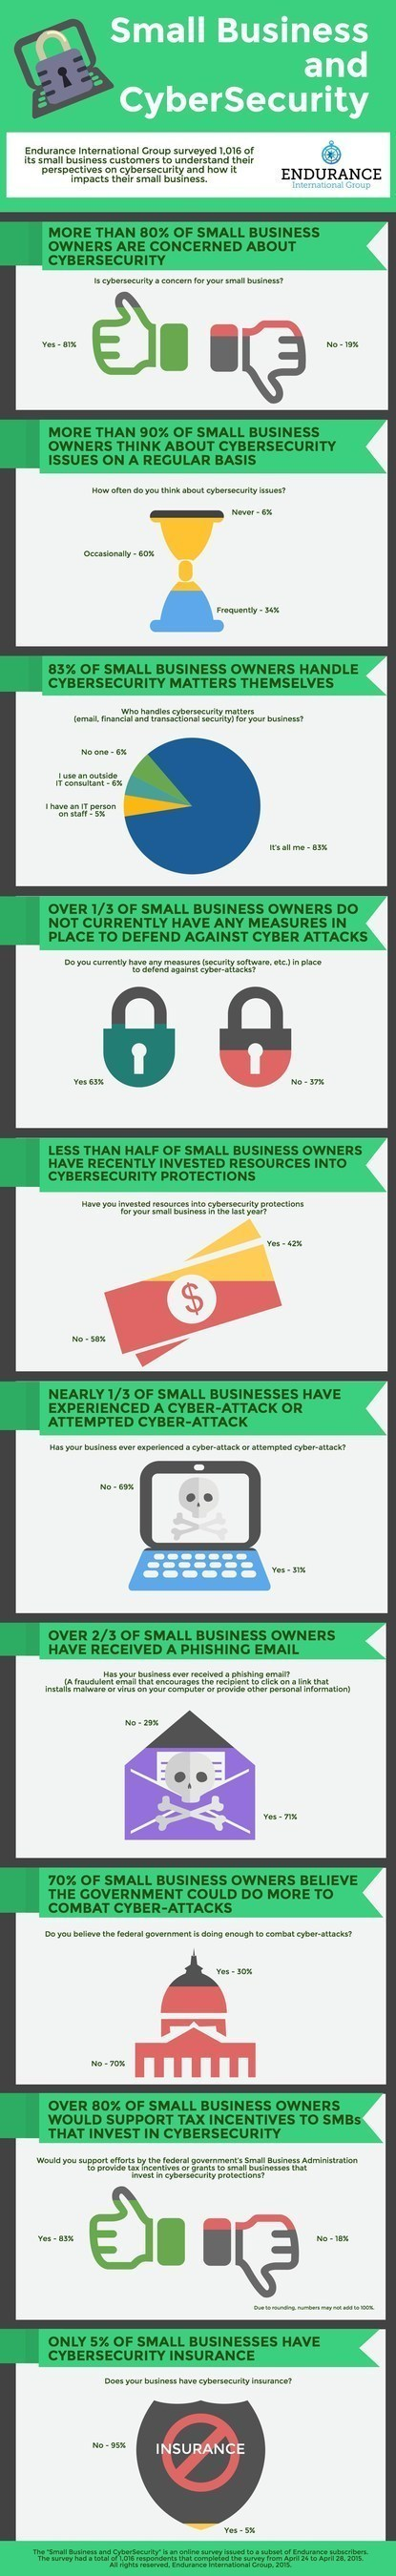 Small Business and Cybersecurity Infographic